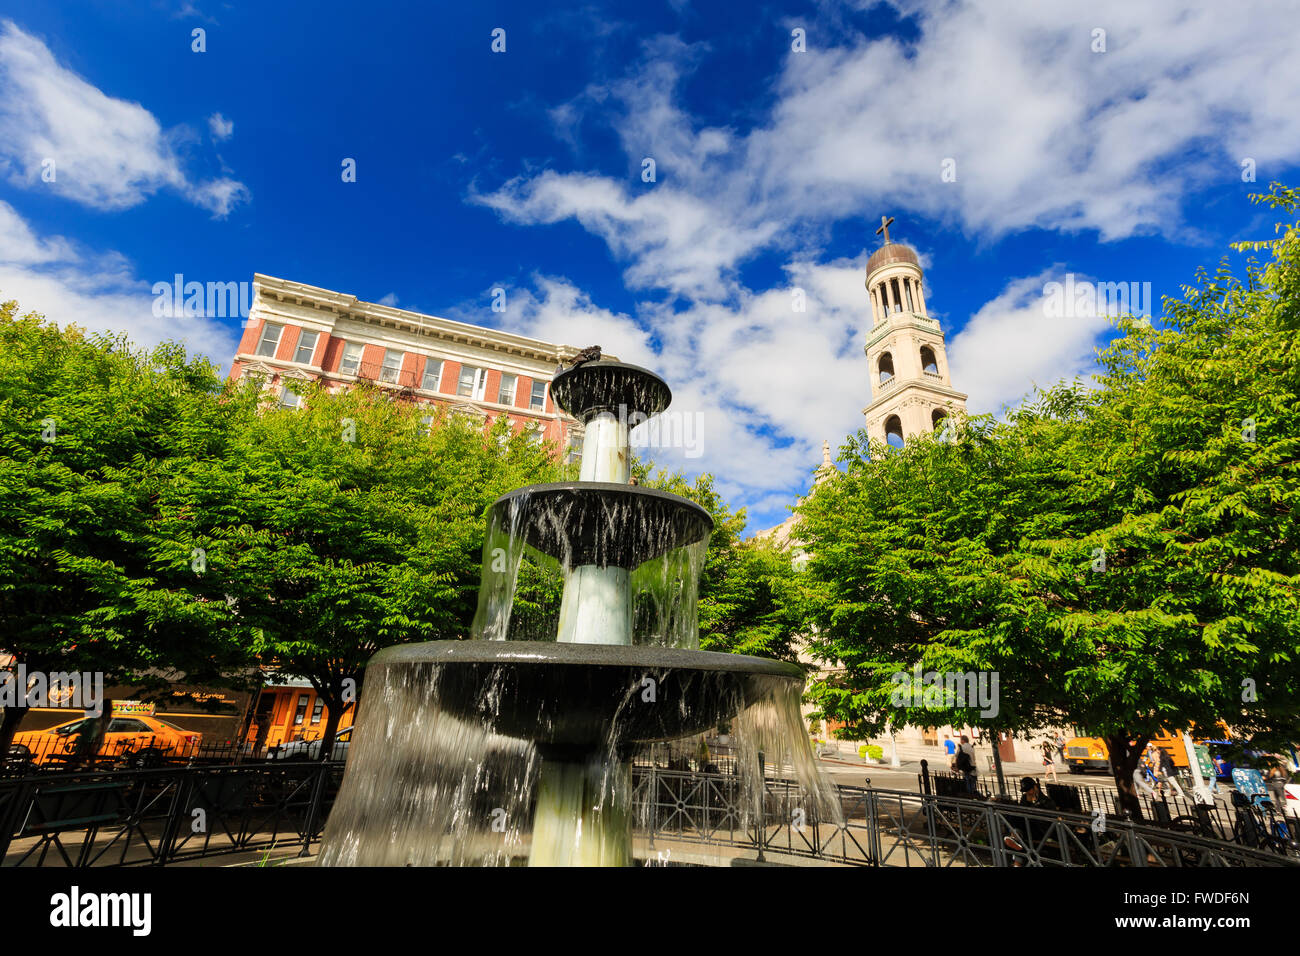 New York City, SEP 12: Some street view near Father Demo Square at New York City on SEP 12, 2014 - Stock Image